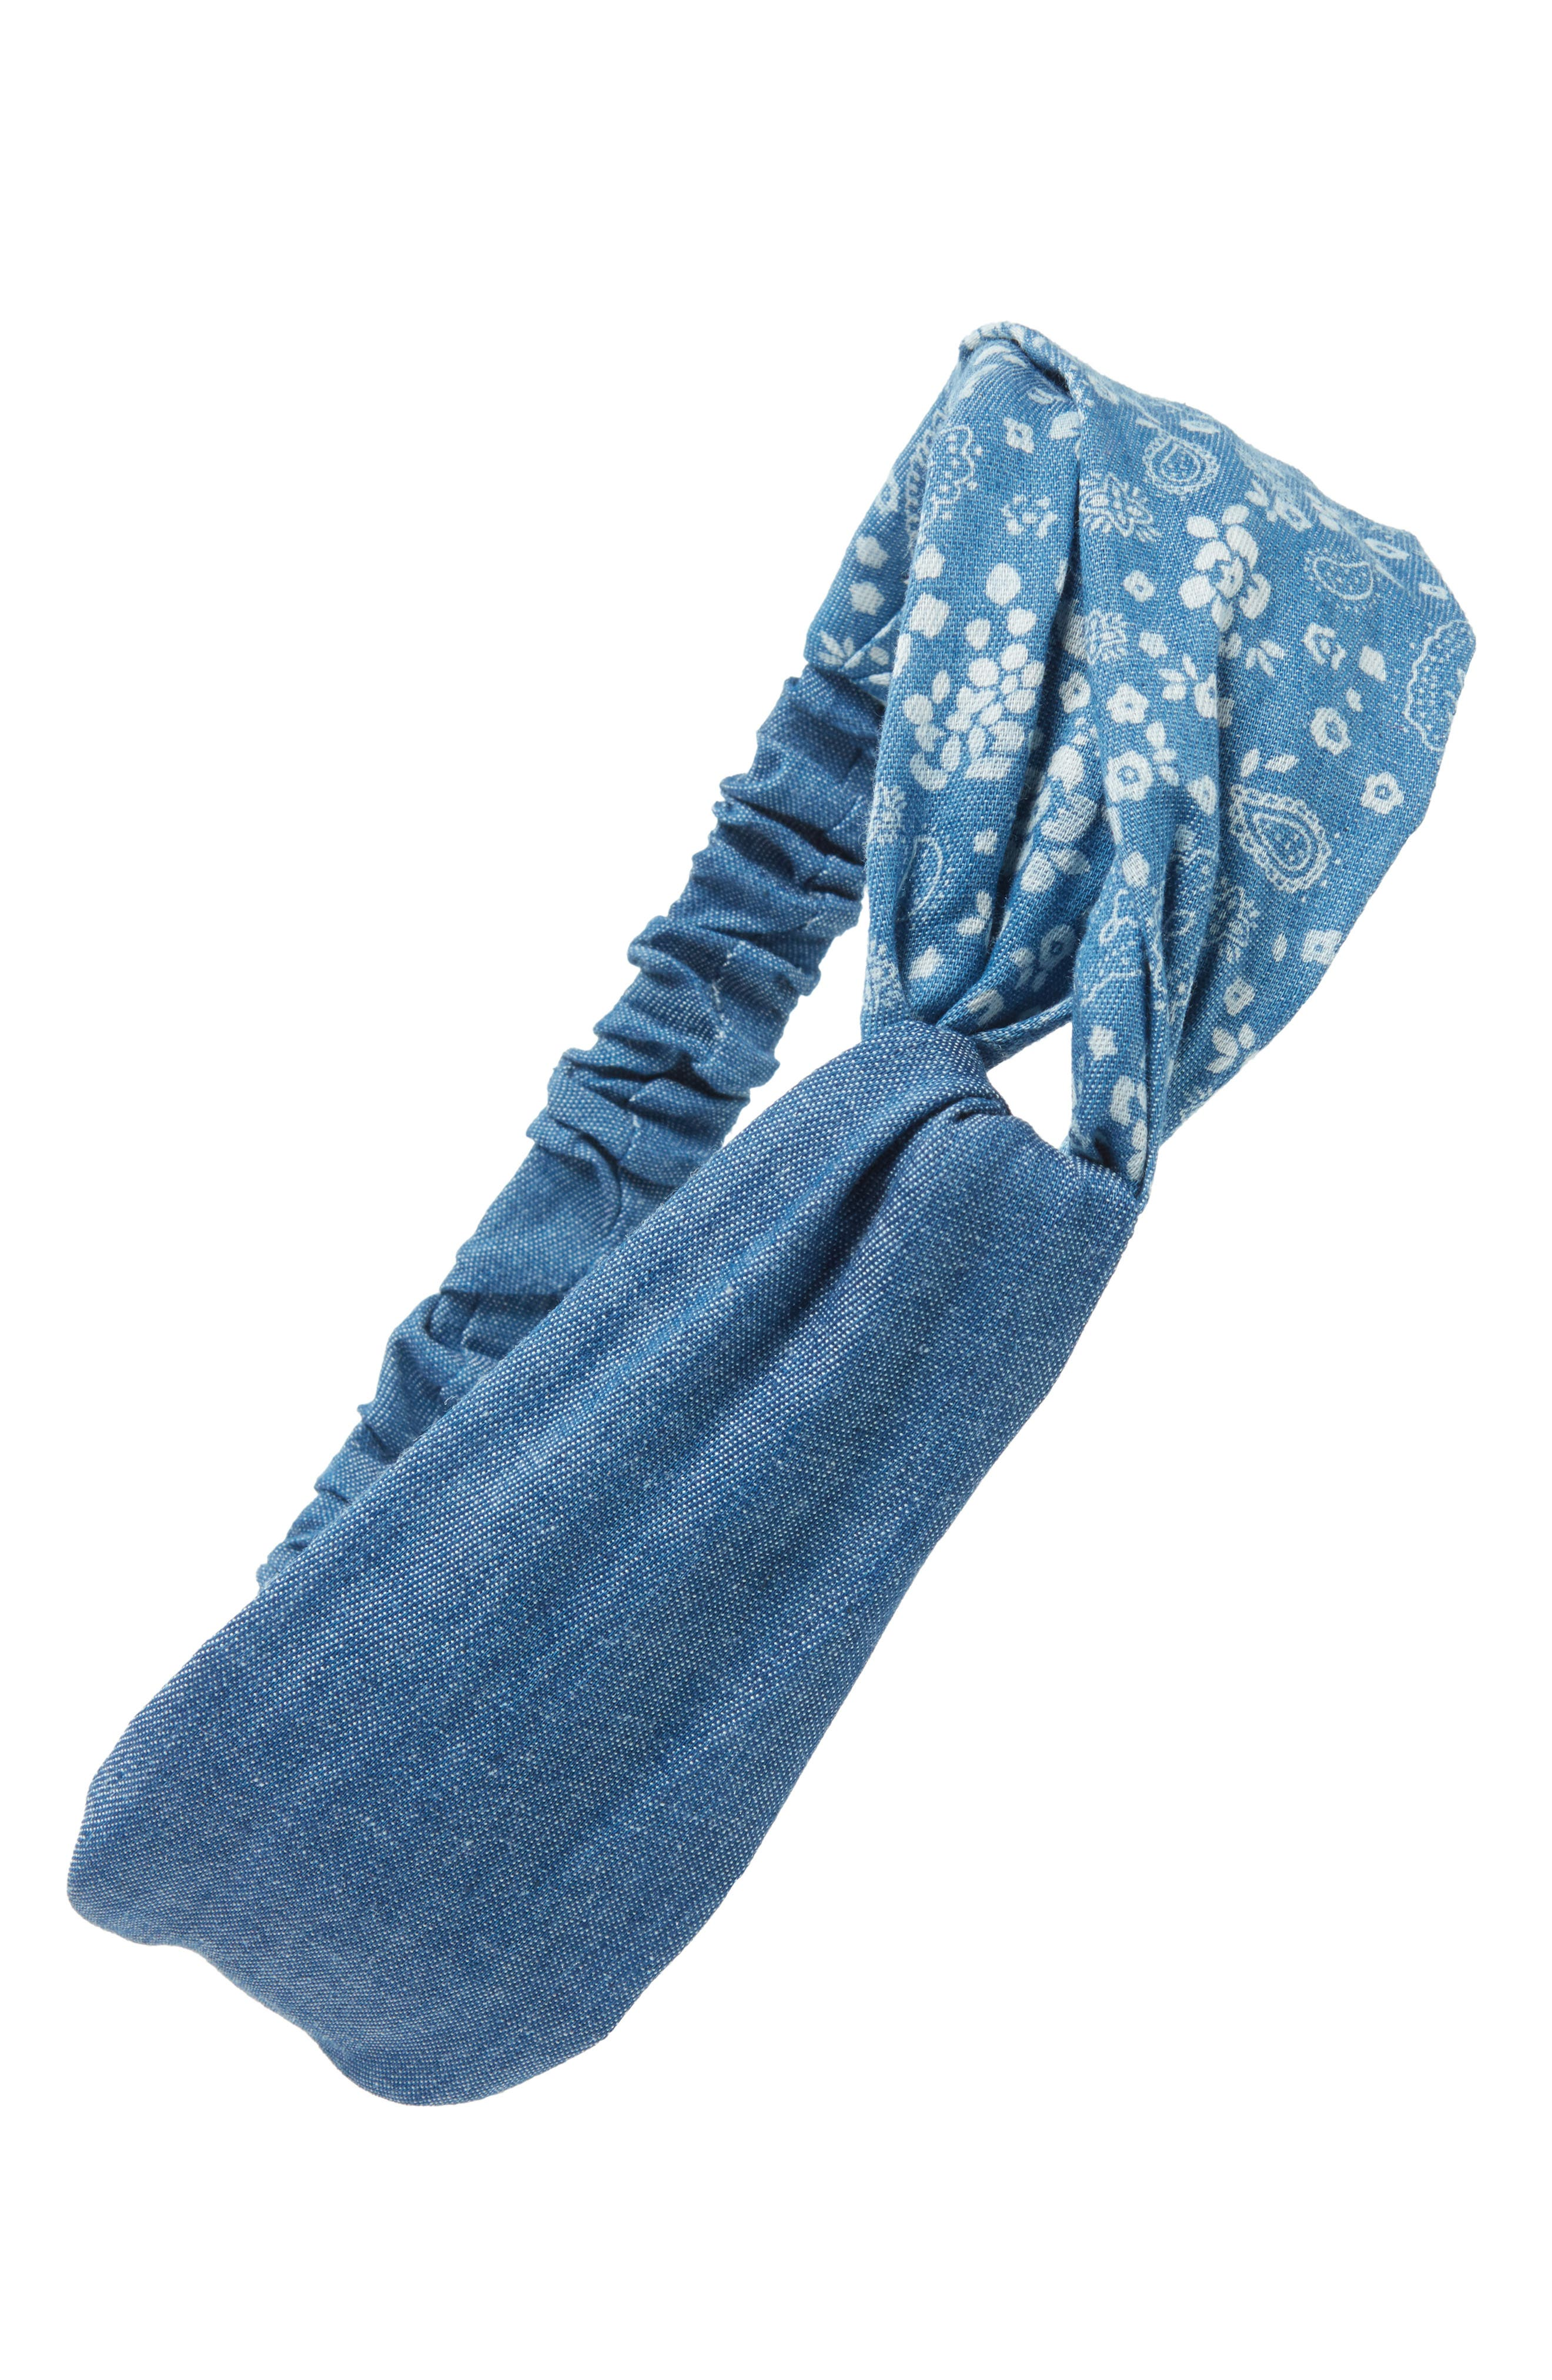 Paisley Denim Head Wrap,                         Main,                         color, 420